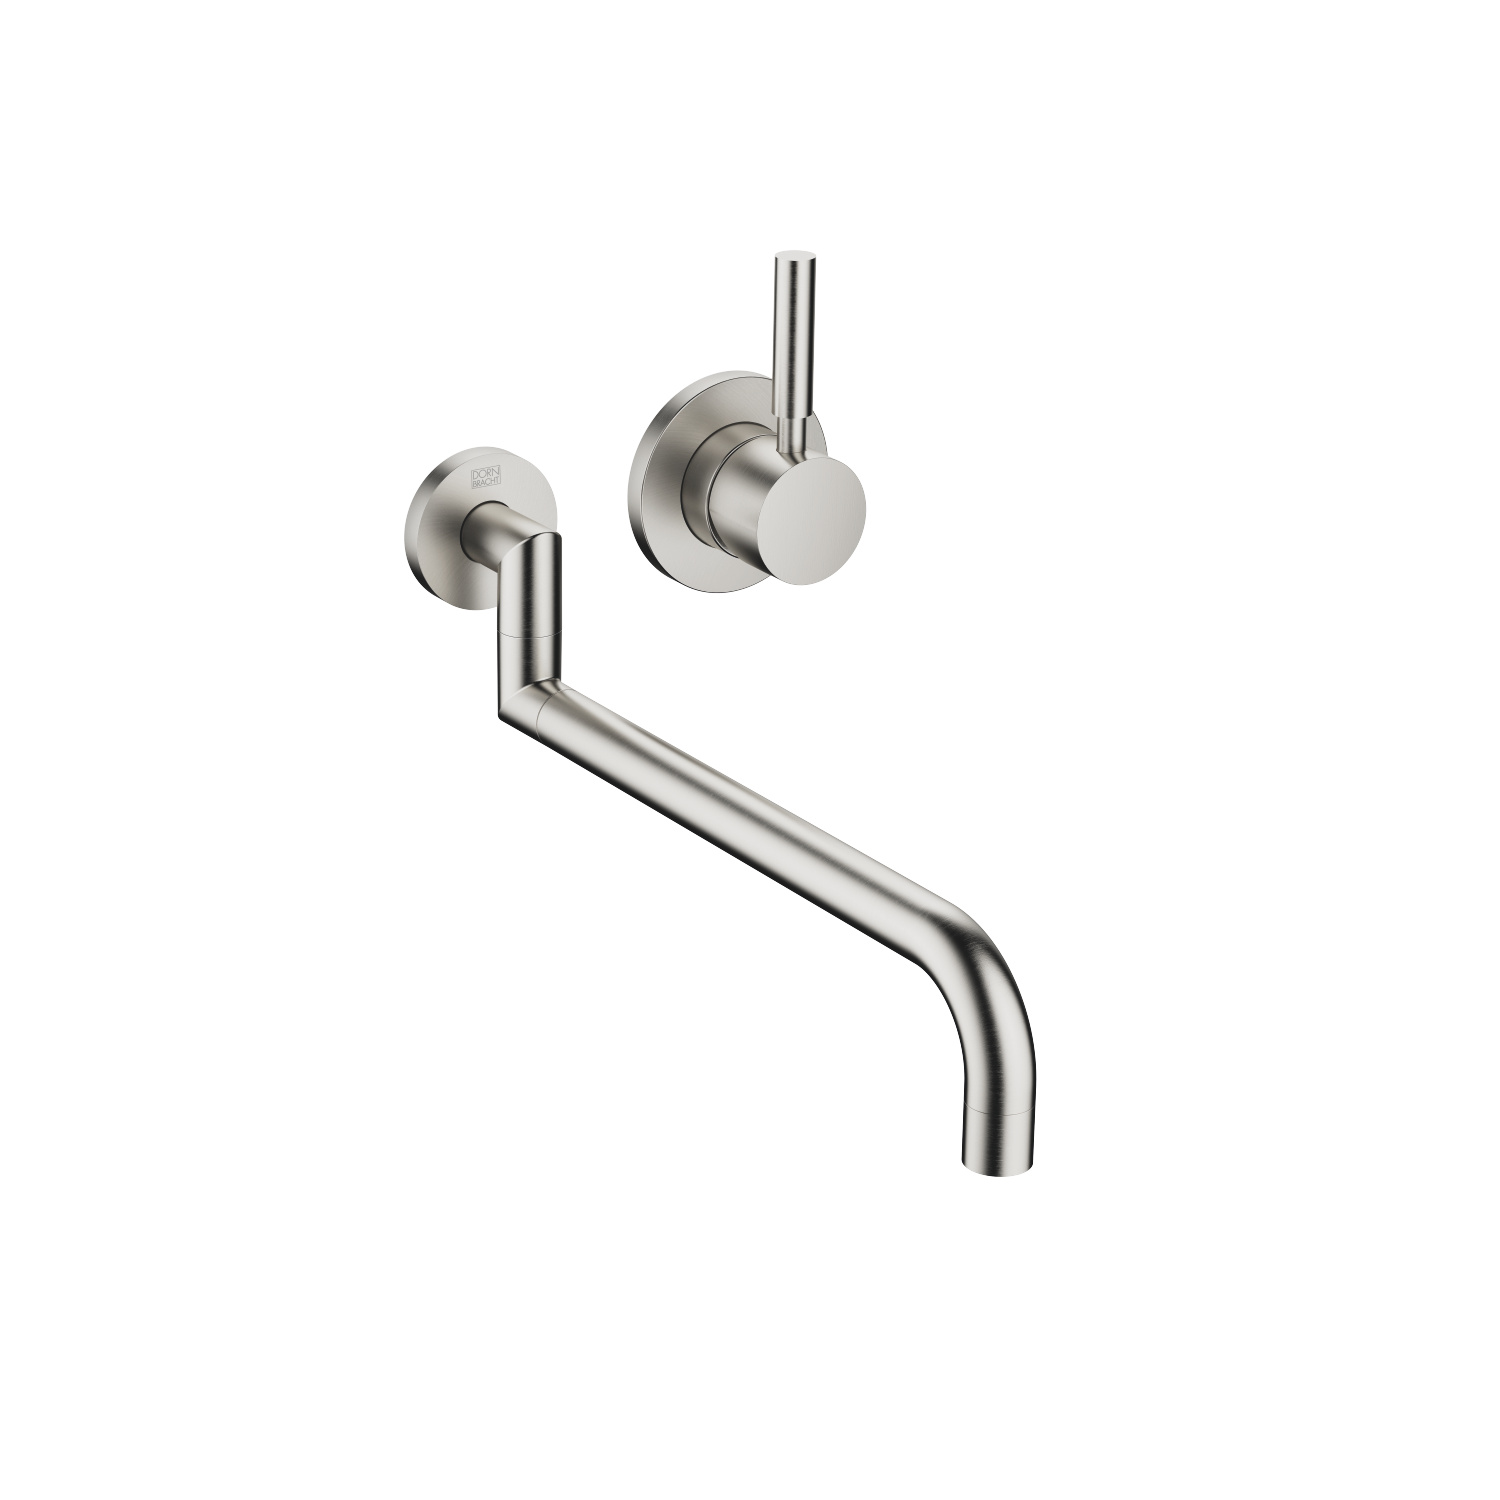 Wall-mounted mixer with individual rosettes - platinum matt